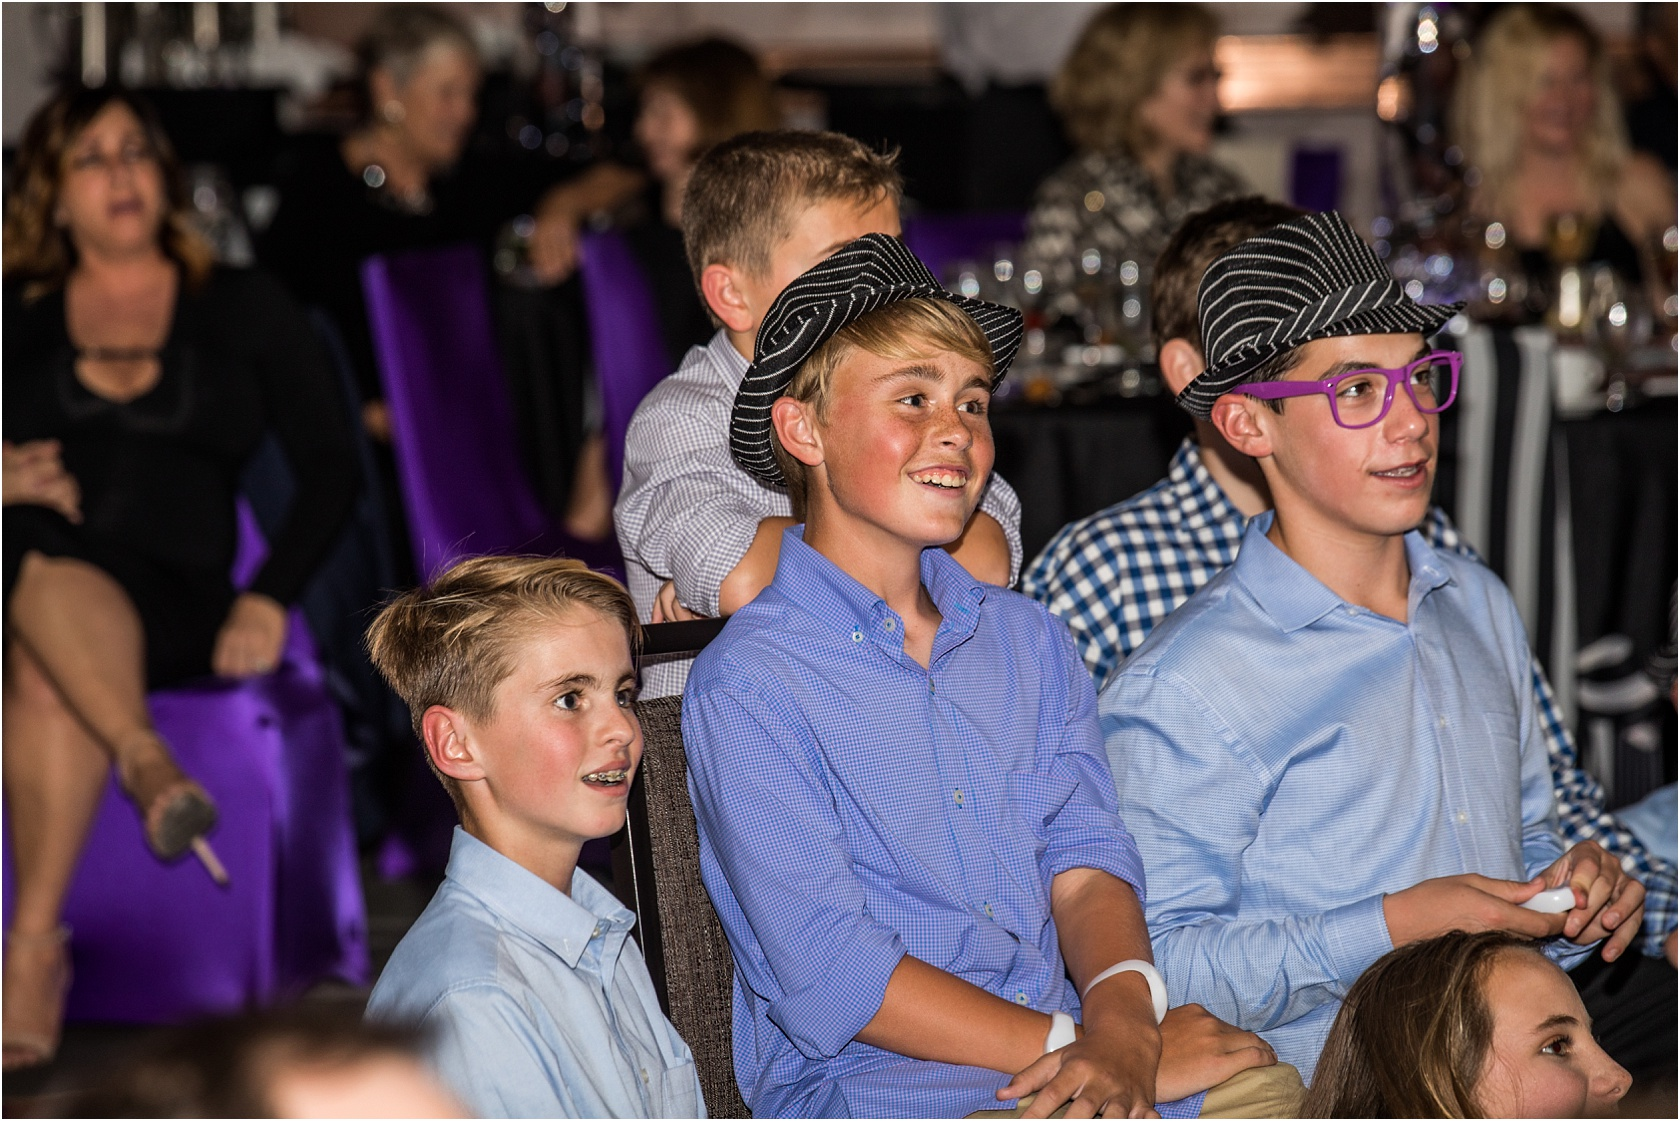 Matts San Diego Bar Mitzvah Living Radiant Photography_0167.jpg